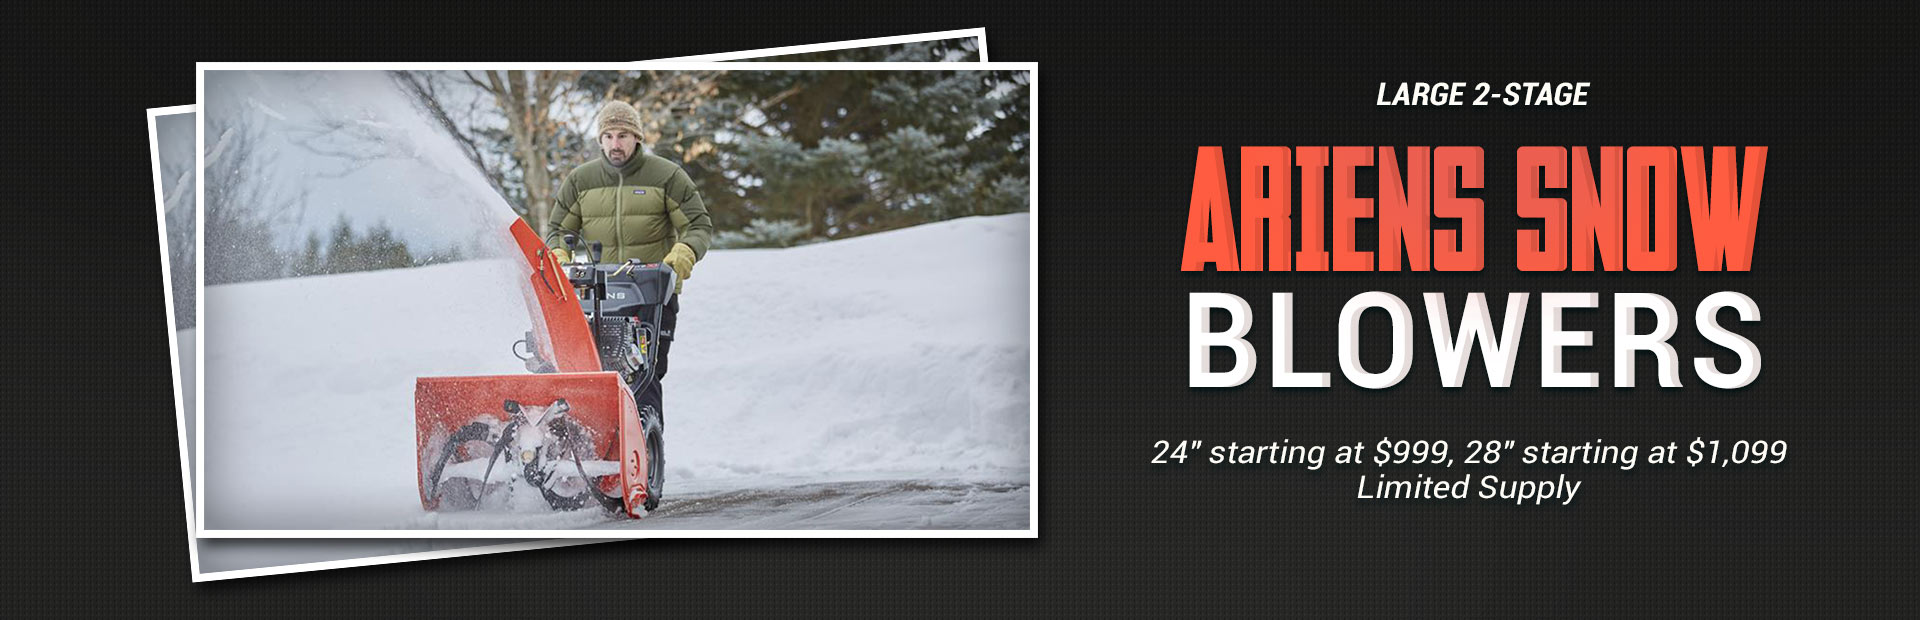 Large 2-stage Ariends snow blowers: 24'' starting at $999 and 28'' starting at $1,099 while supplies